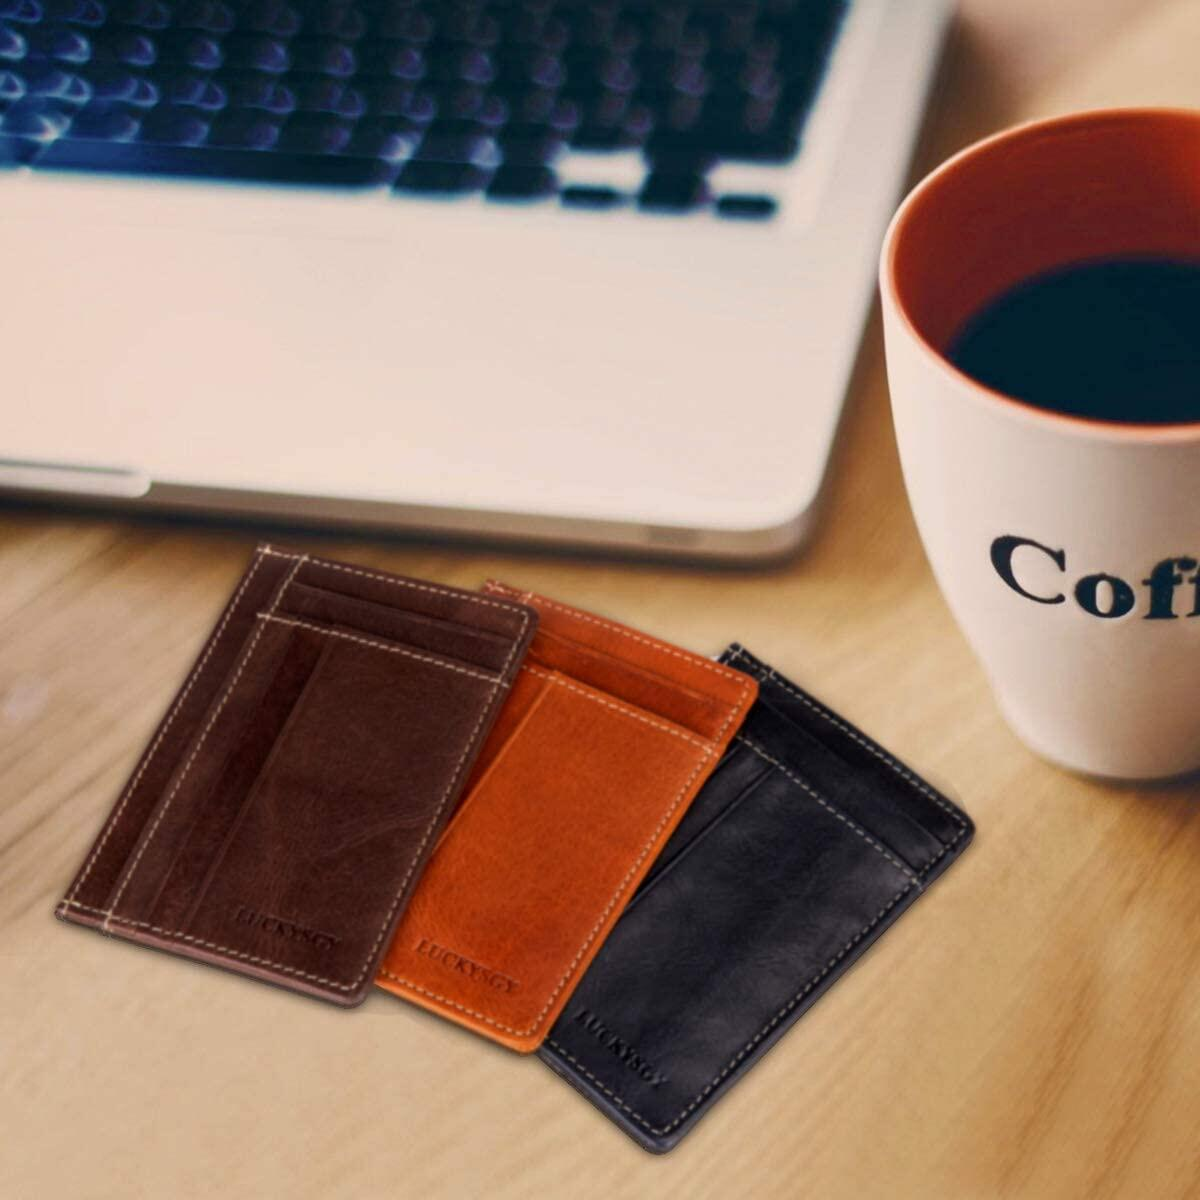 Minimalist Wallets for Men RFID Business Card Holder Retro Leather Slim Credit Card Case Front Pocket Travel Wallet